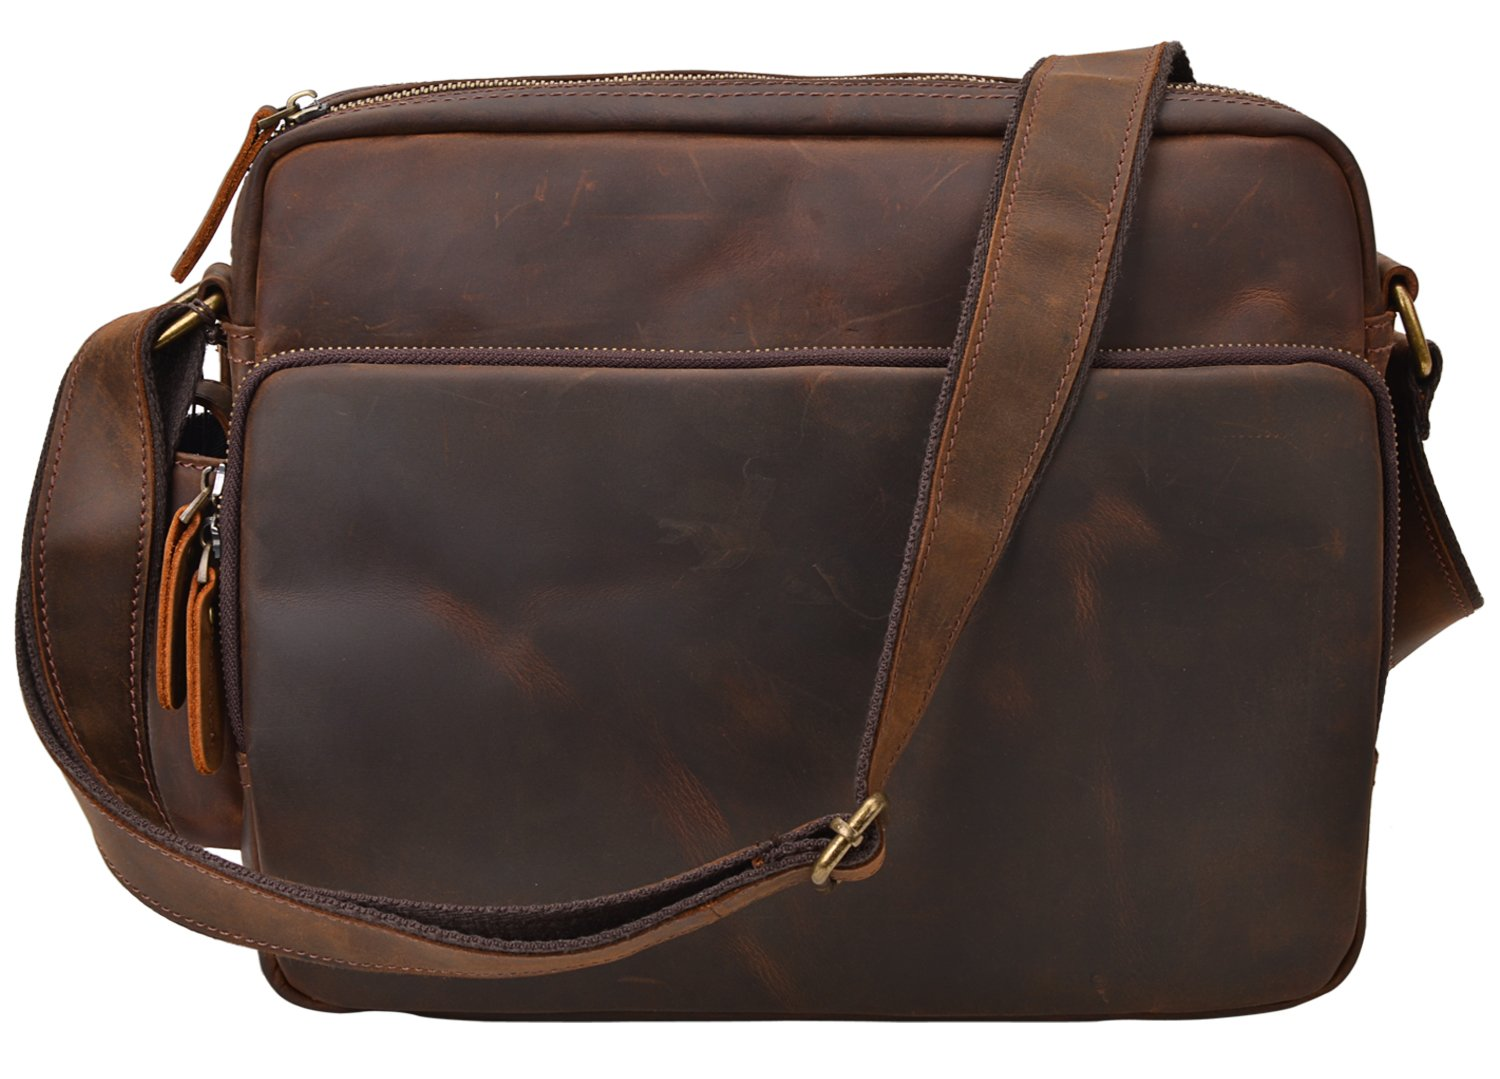 ALTOSY Vintage Leather Messenger Bag Office Briefcase Shoulder Bag 6252 (brown)